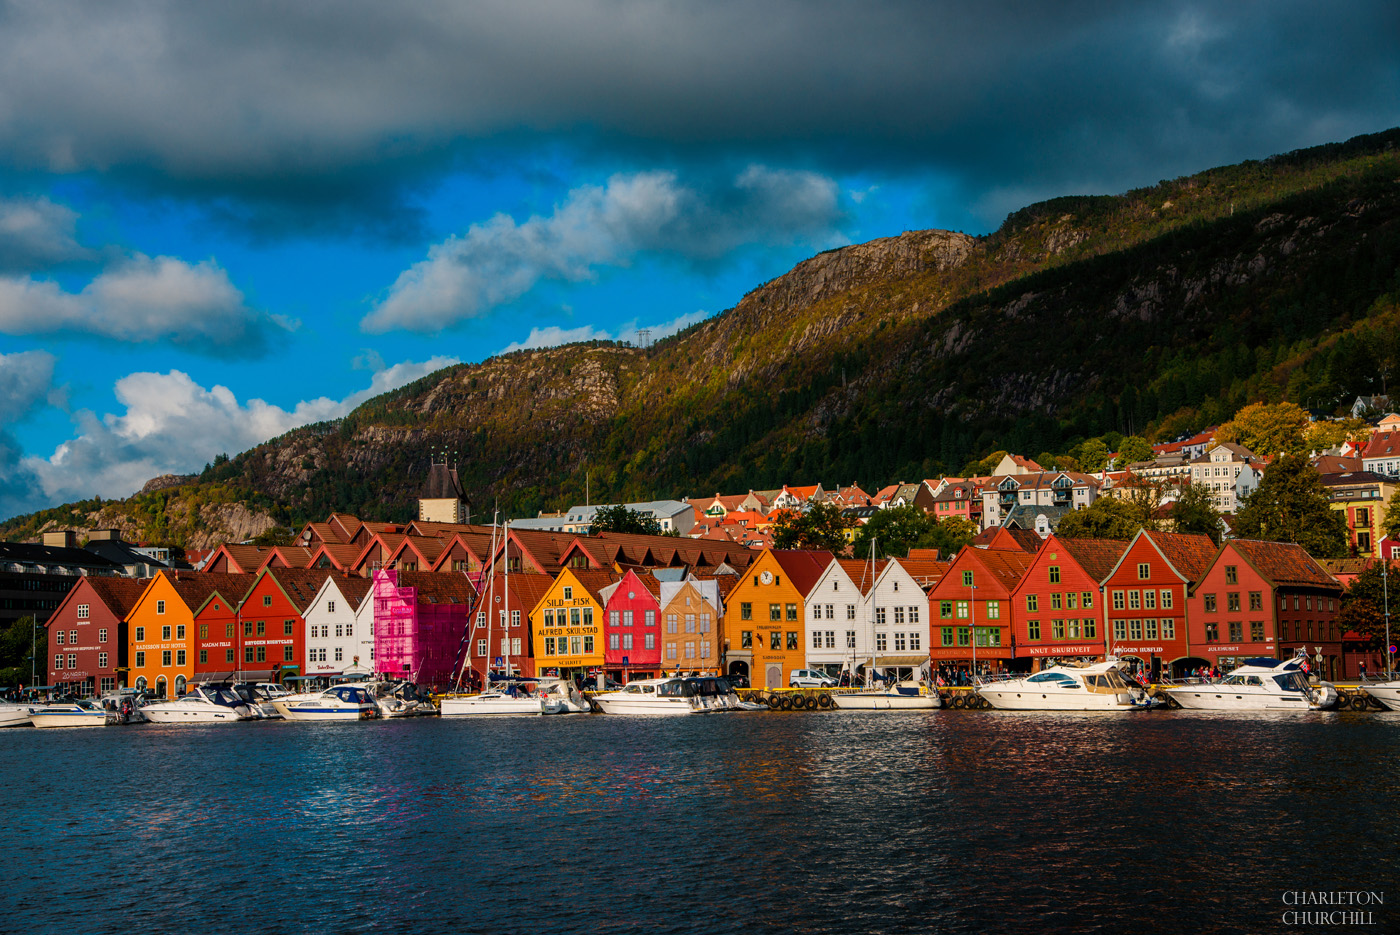 flying into Bergen, Norway to start the wedding adventure downtown with colorful houses and boats